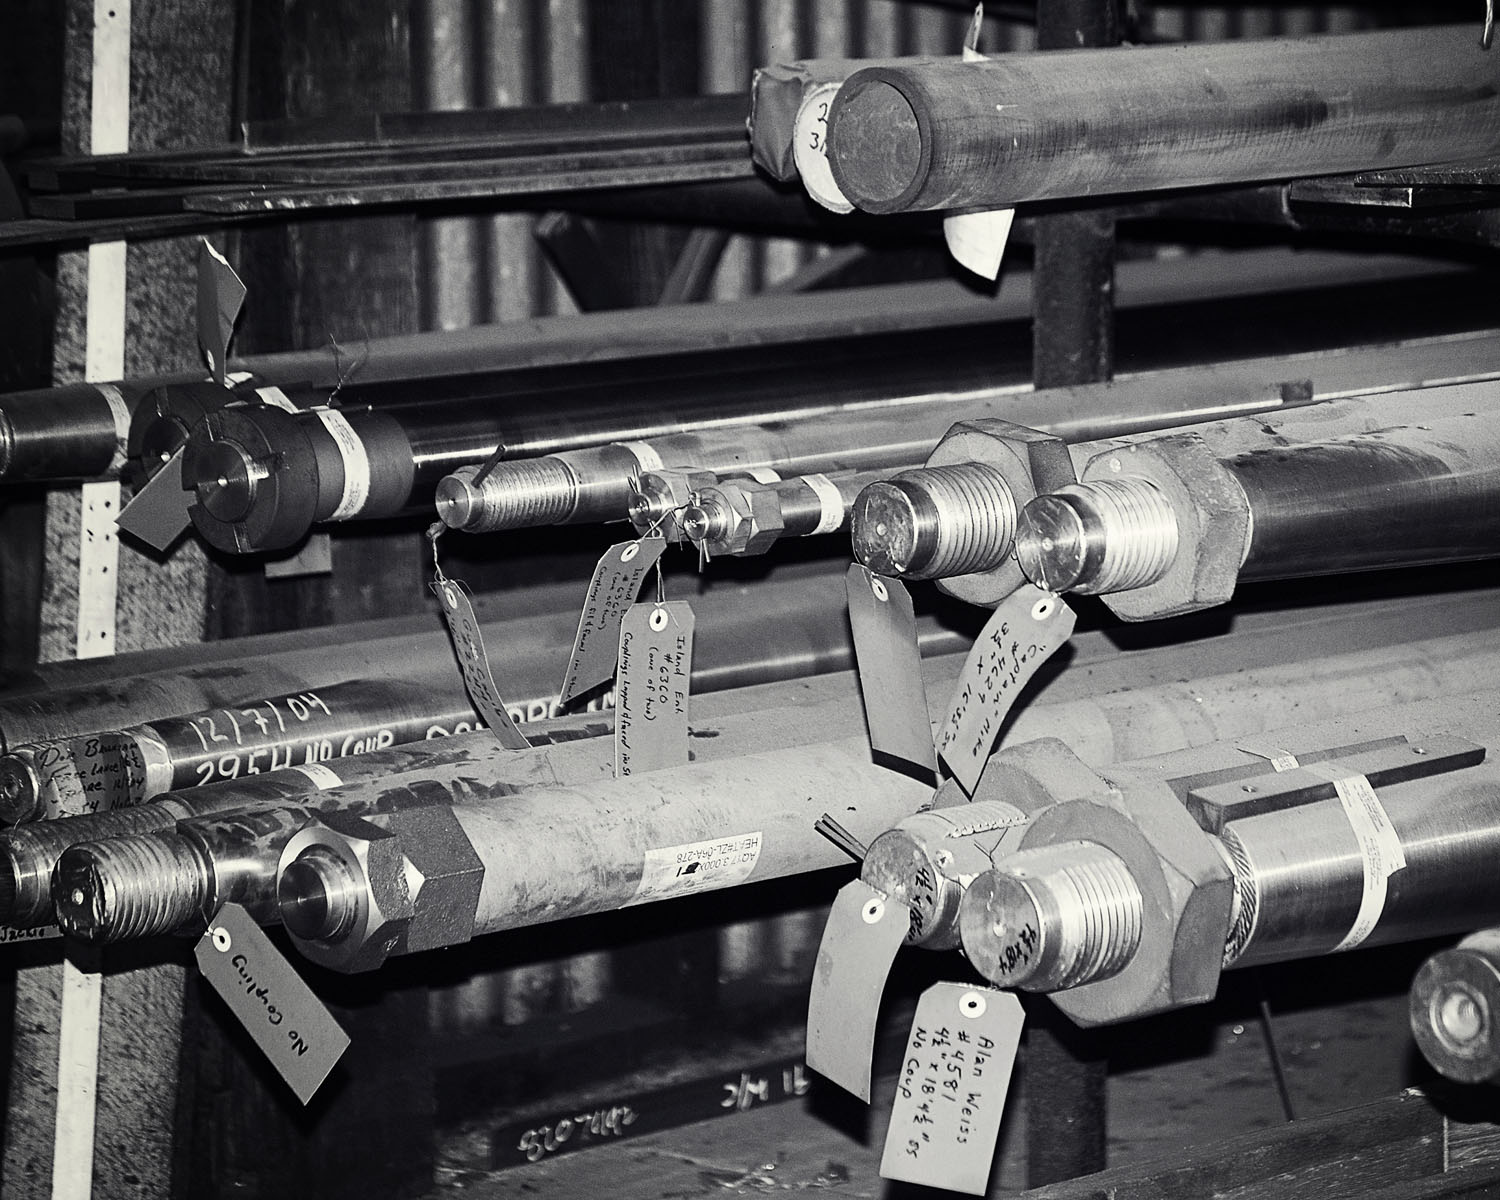 Propeller shaft repair and reconditioning at wilmingtonironworks.com